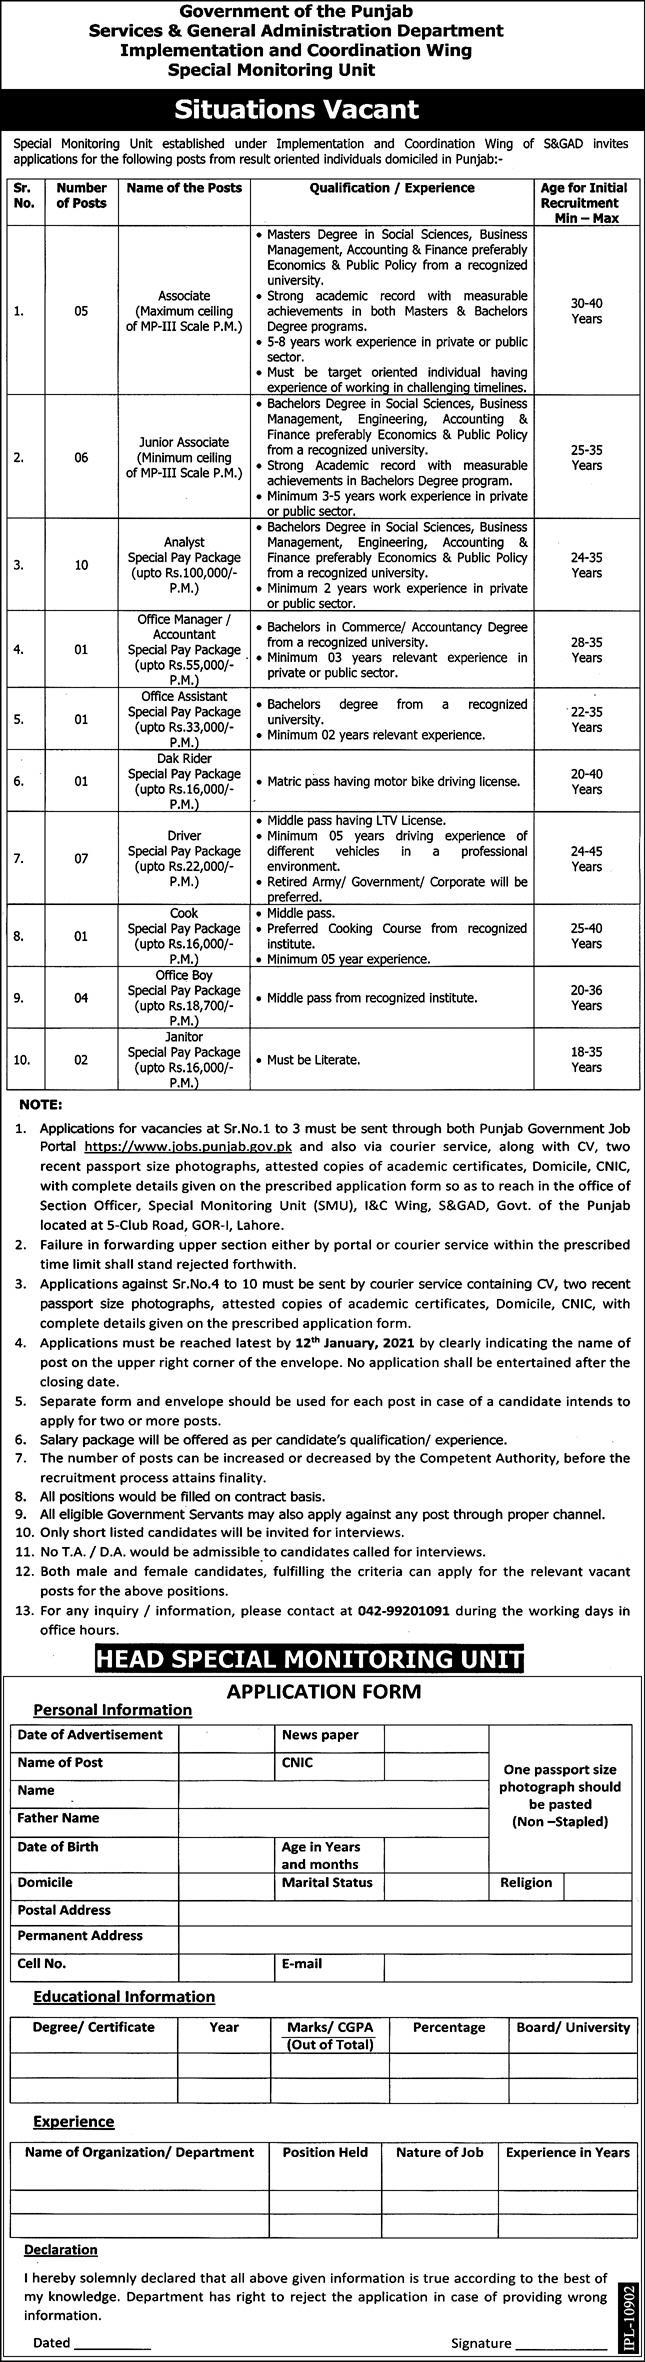 Services & General Administration Department S&GAD Punjab Jobs December 2020